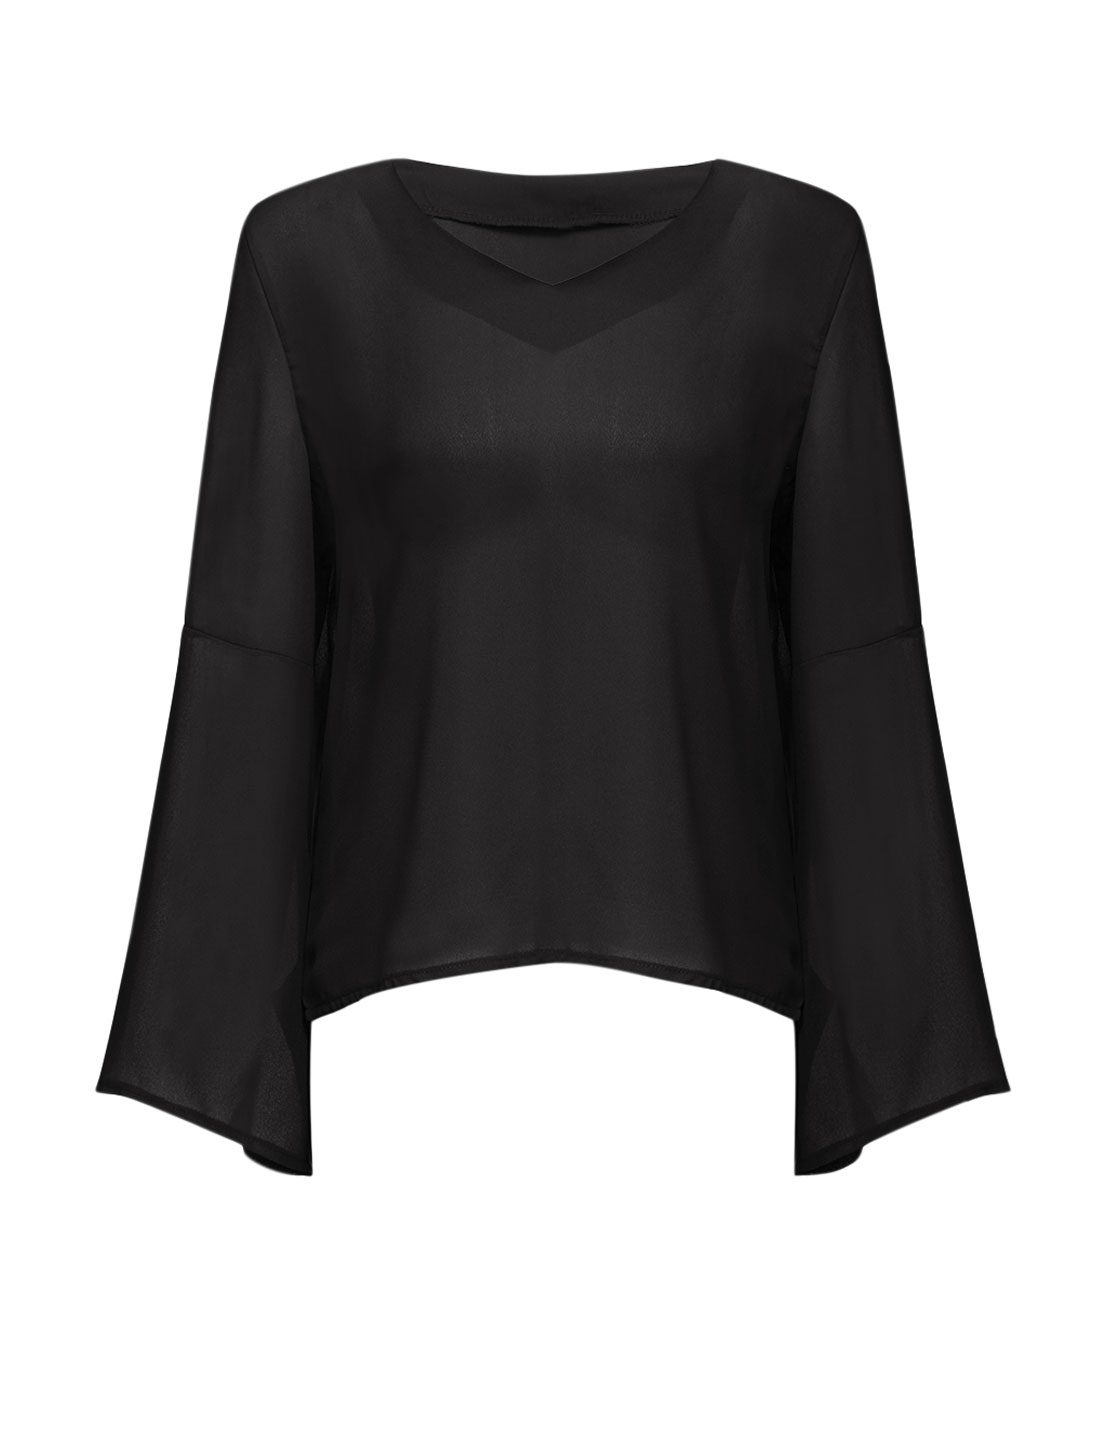 Women Chiffon V Neck Split Cuffs Trumpet Sleeves Semi Sheer Top Black S